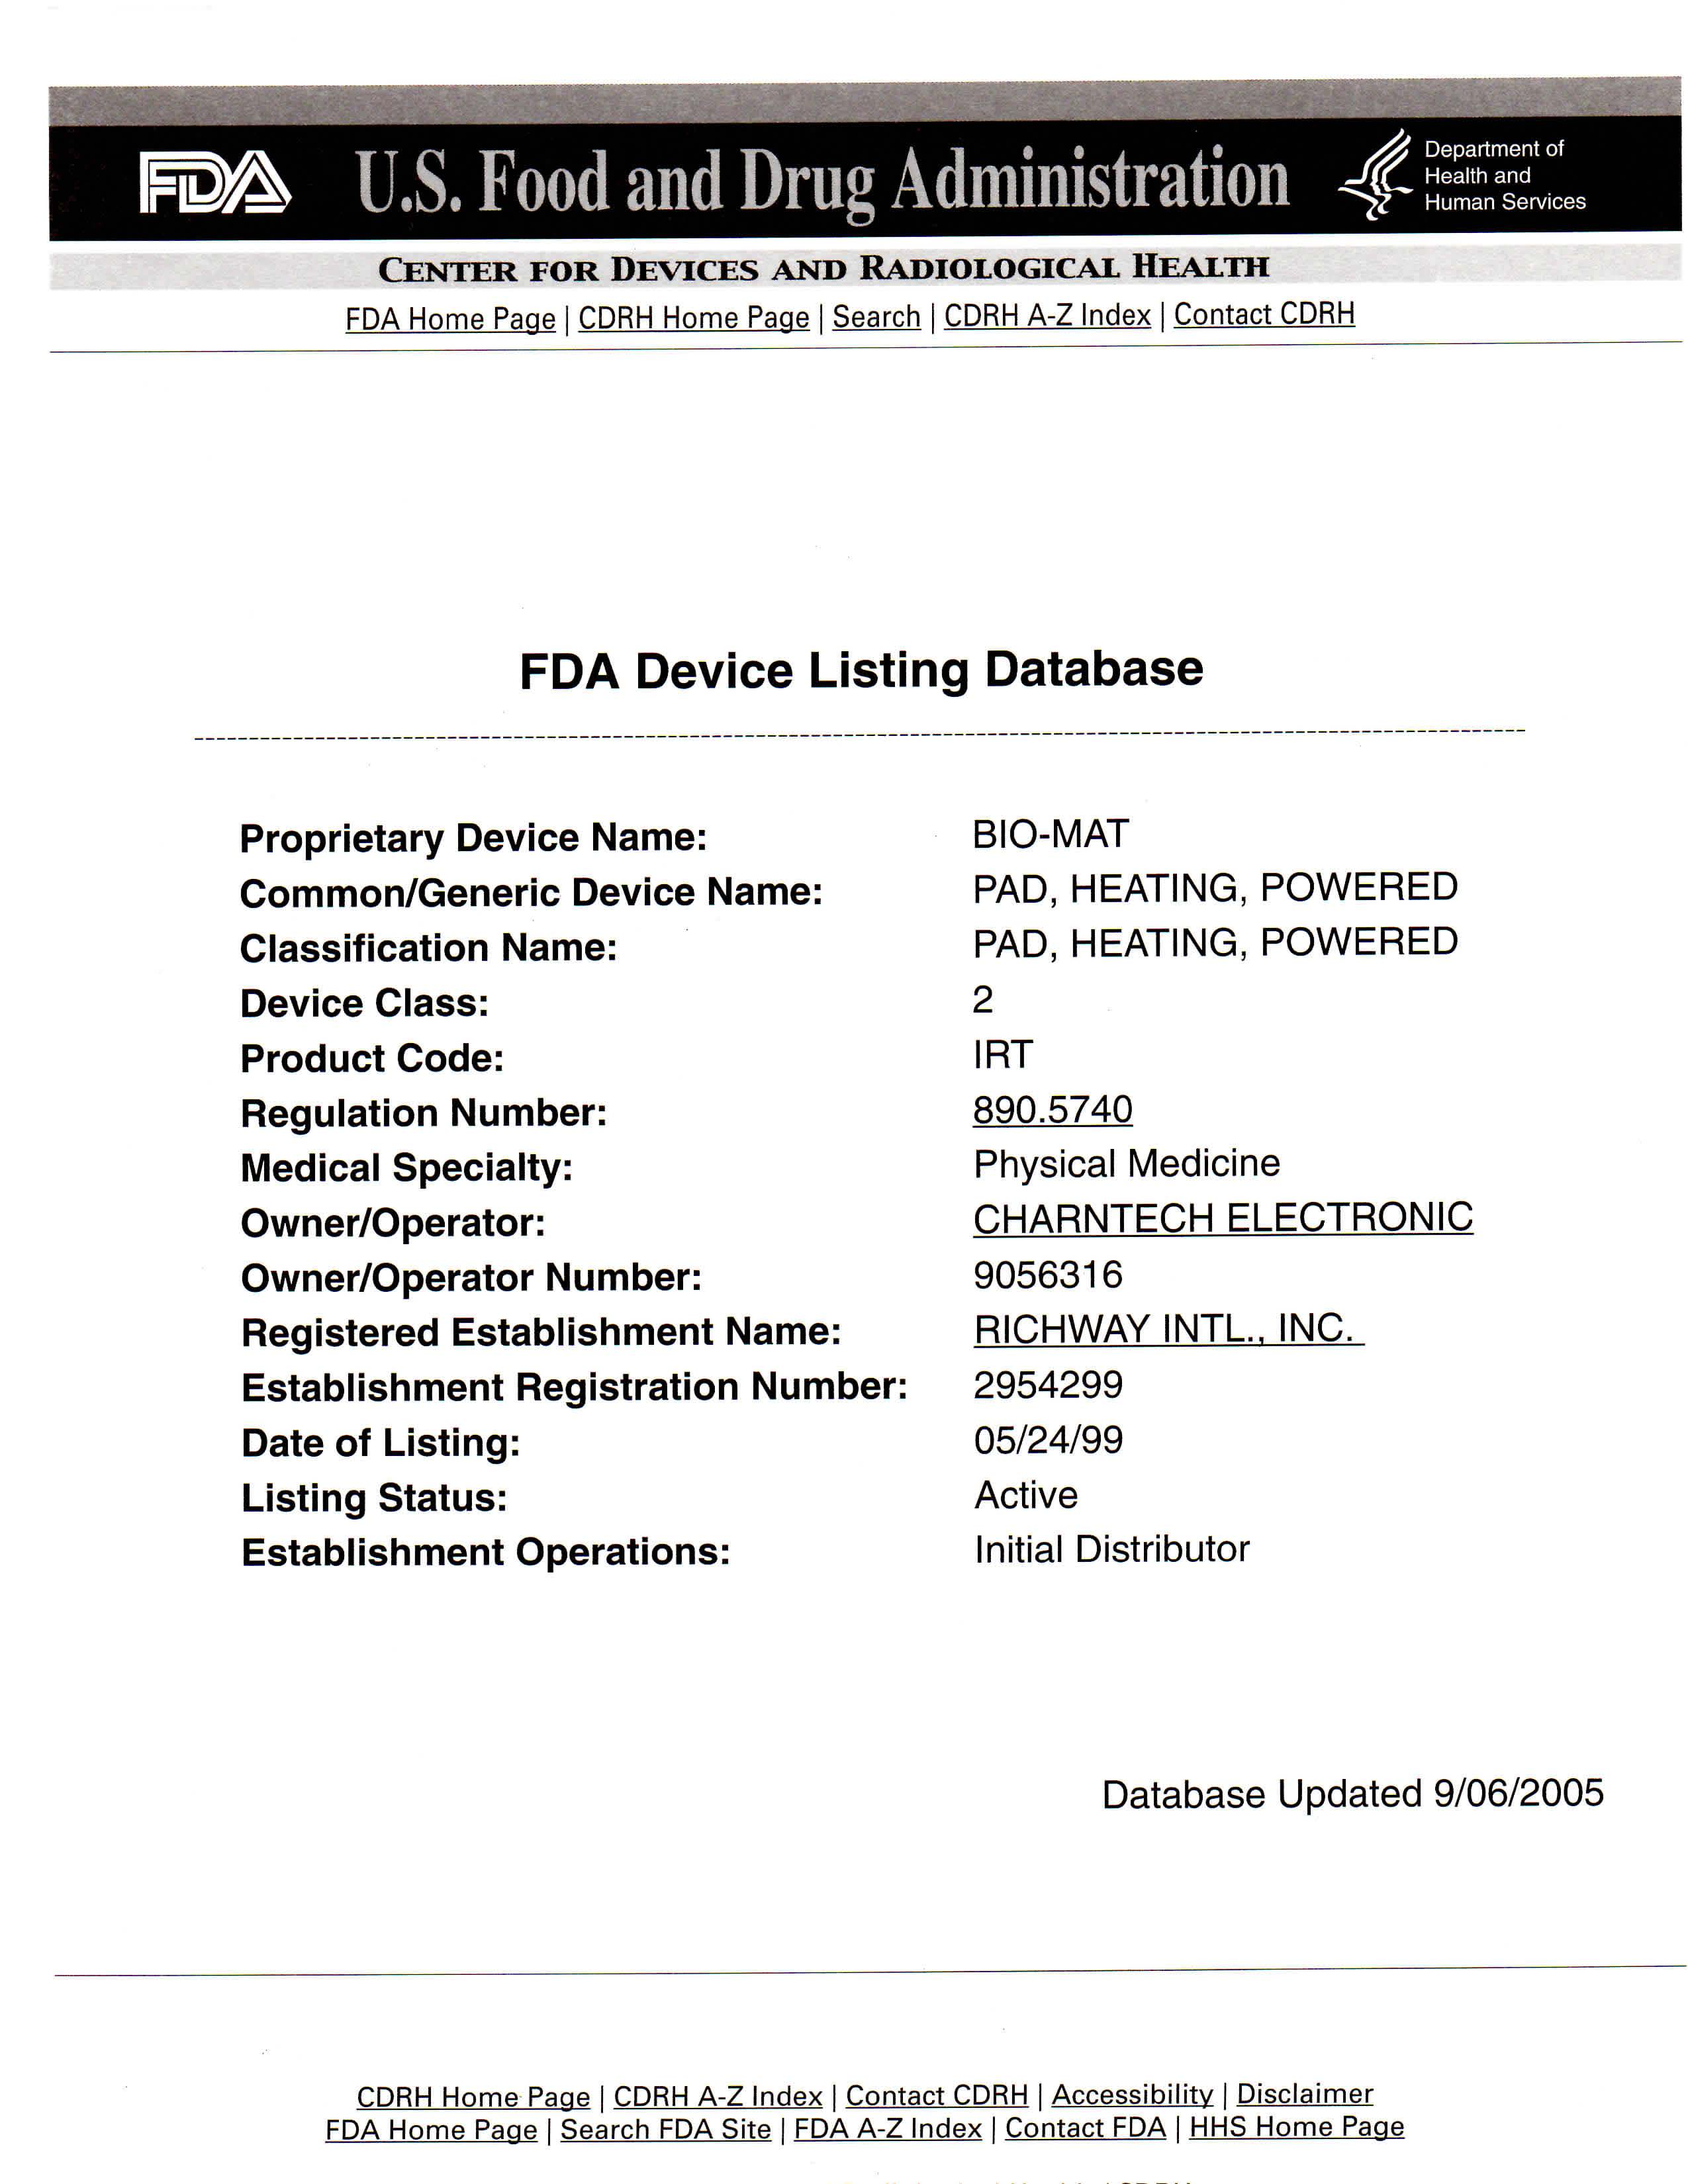 Company your biomat resource guide us food and drug administration fda certificate of registration pdf xflitez Image collections